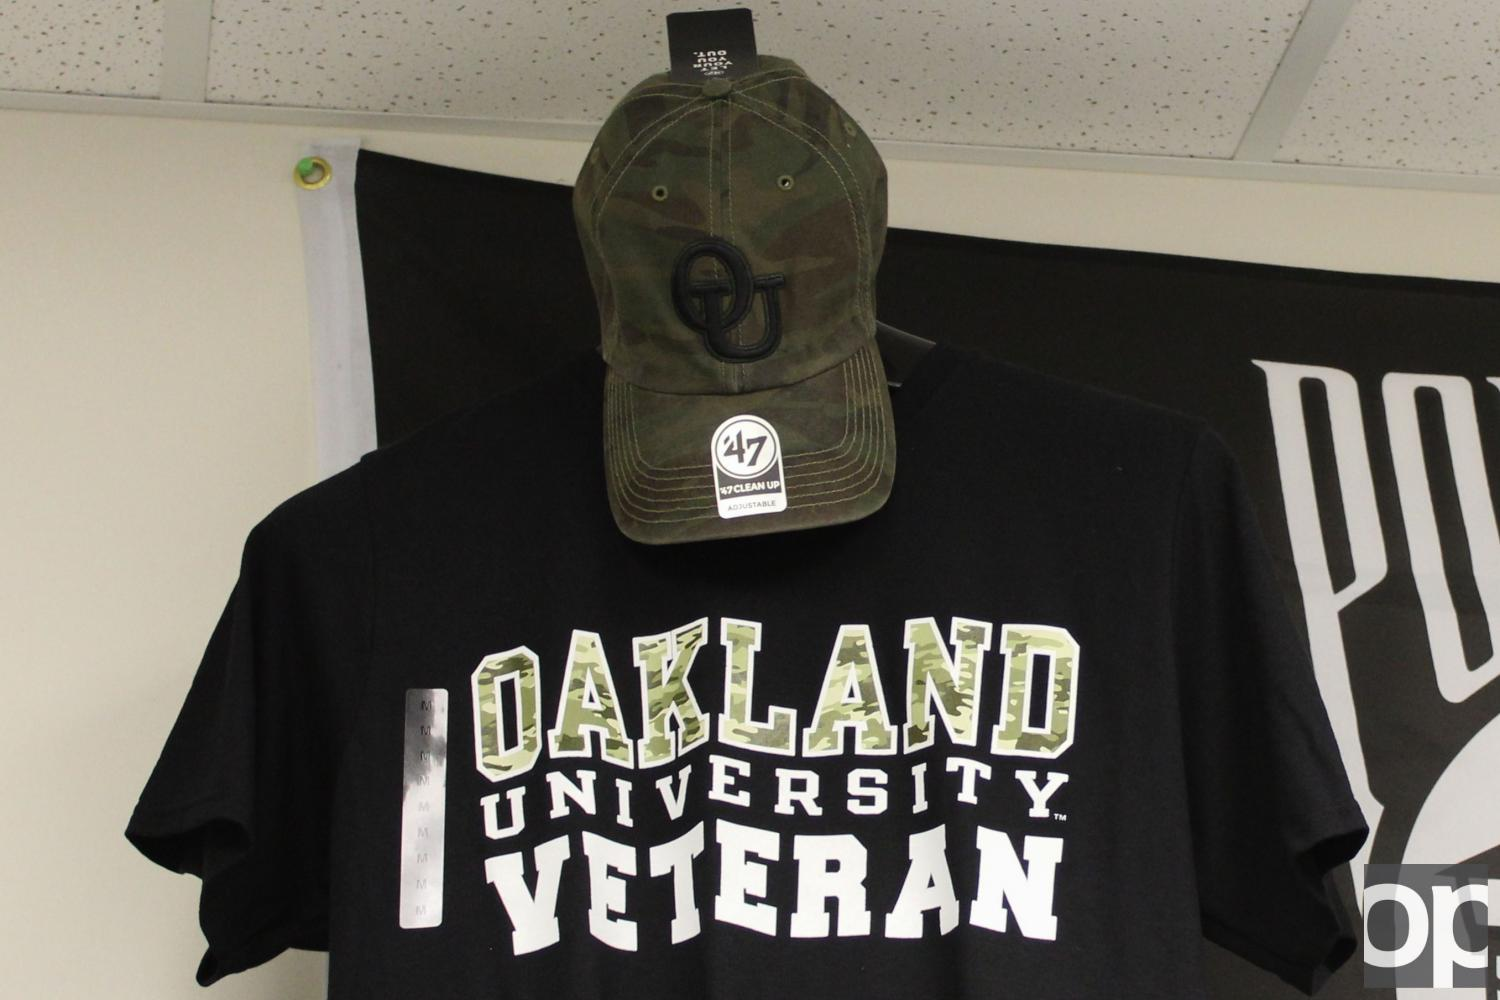 Oakland has won gold status for the second year in a row for veteran support services.